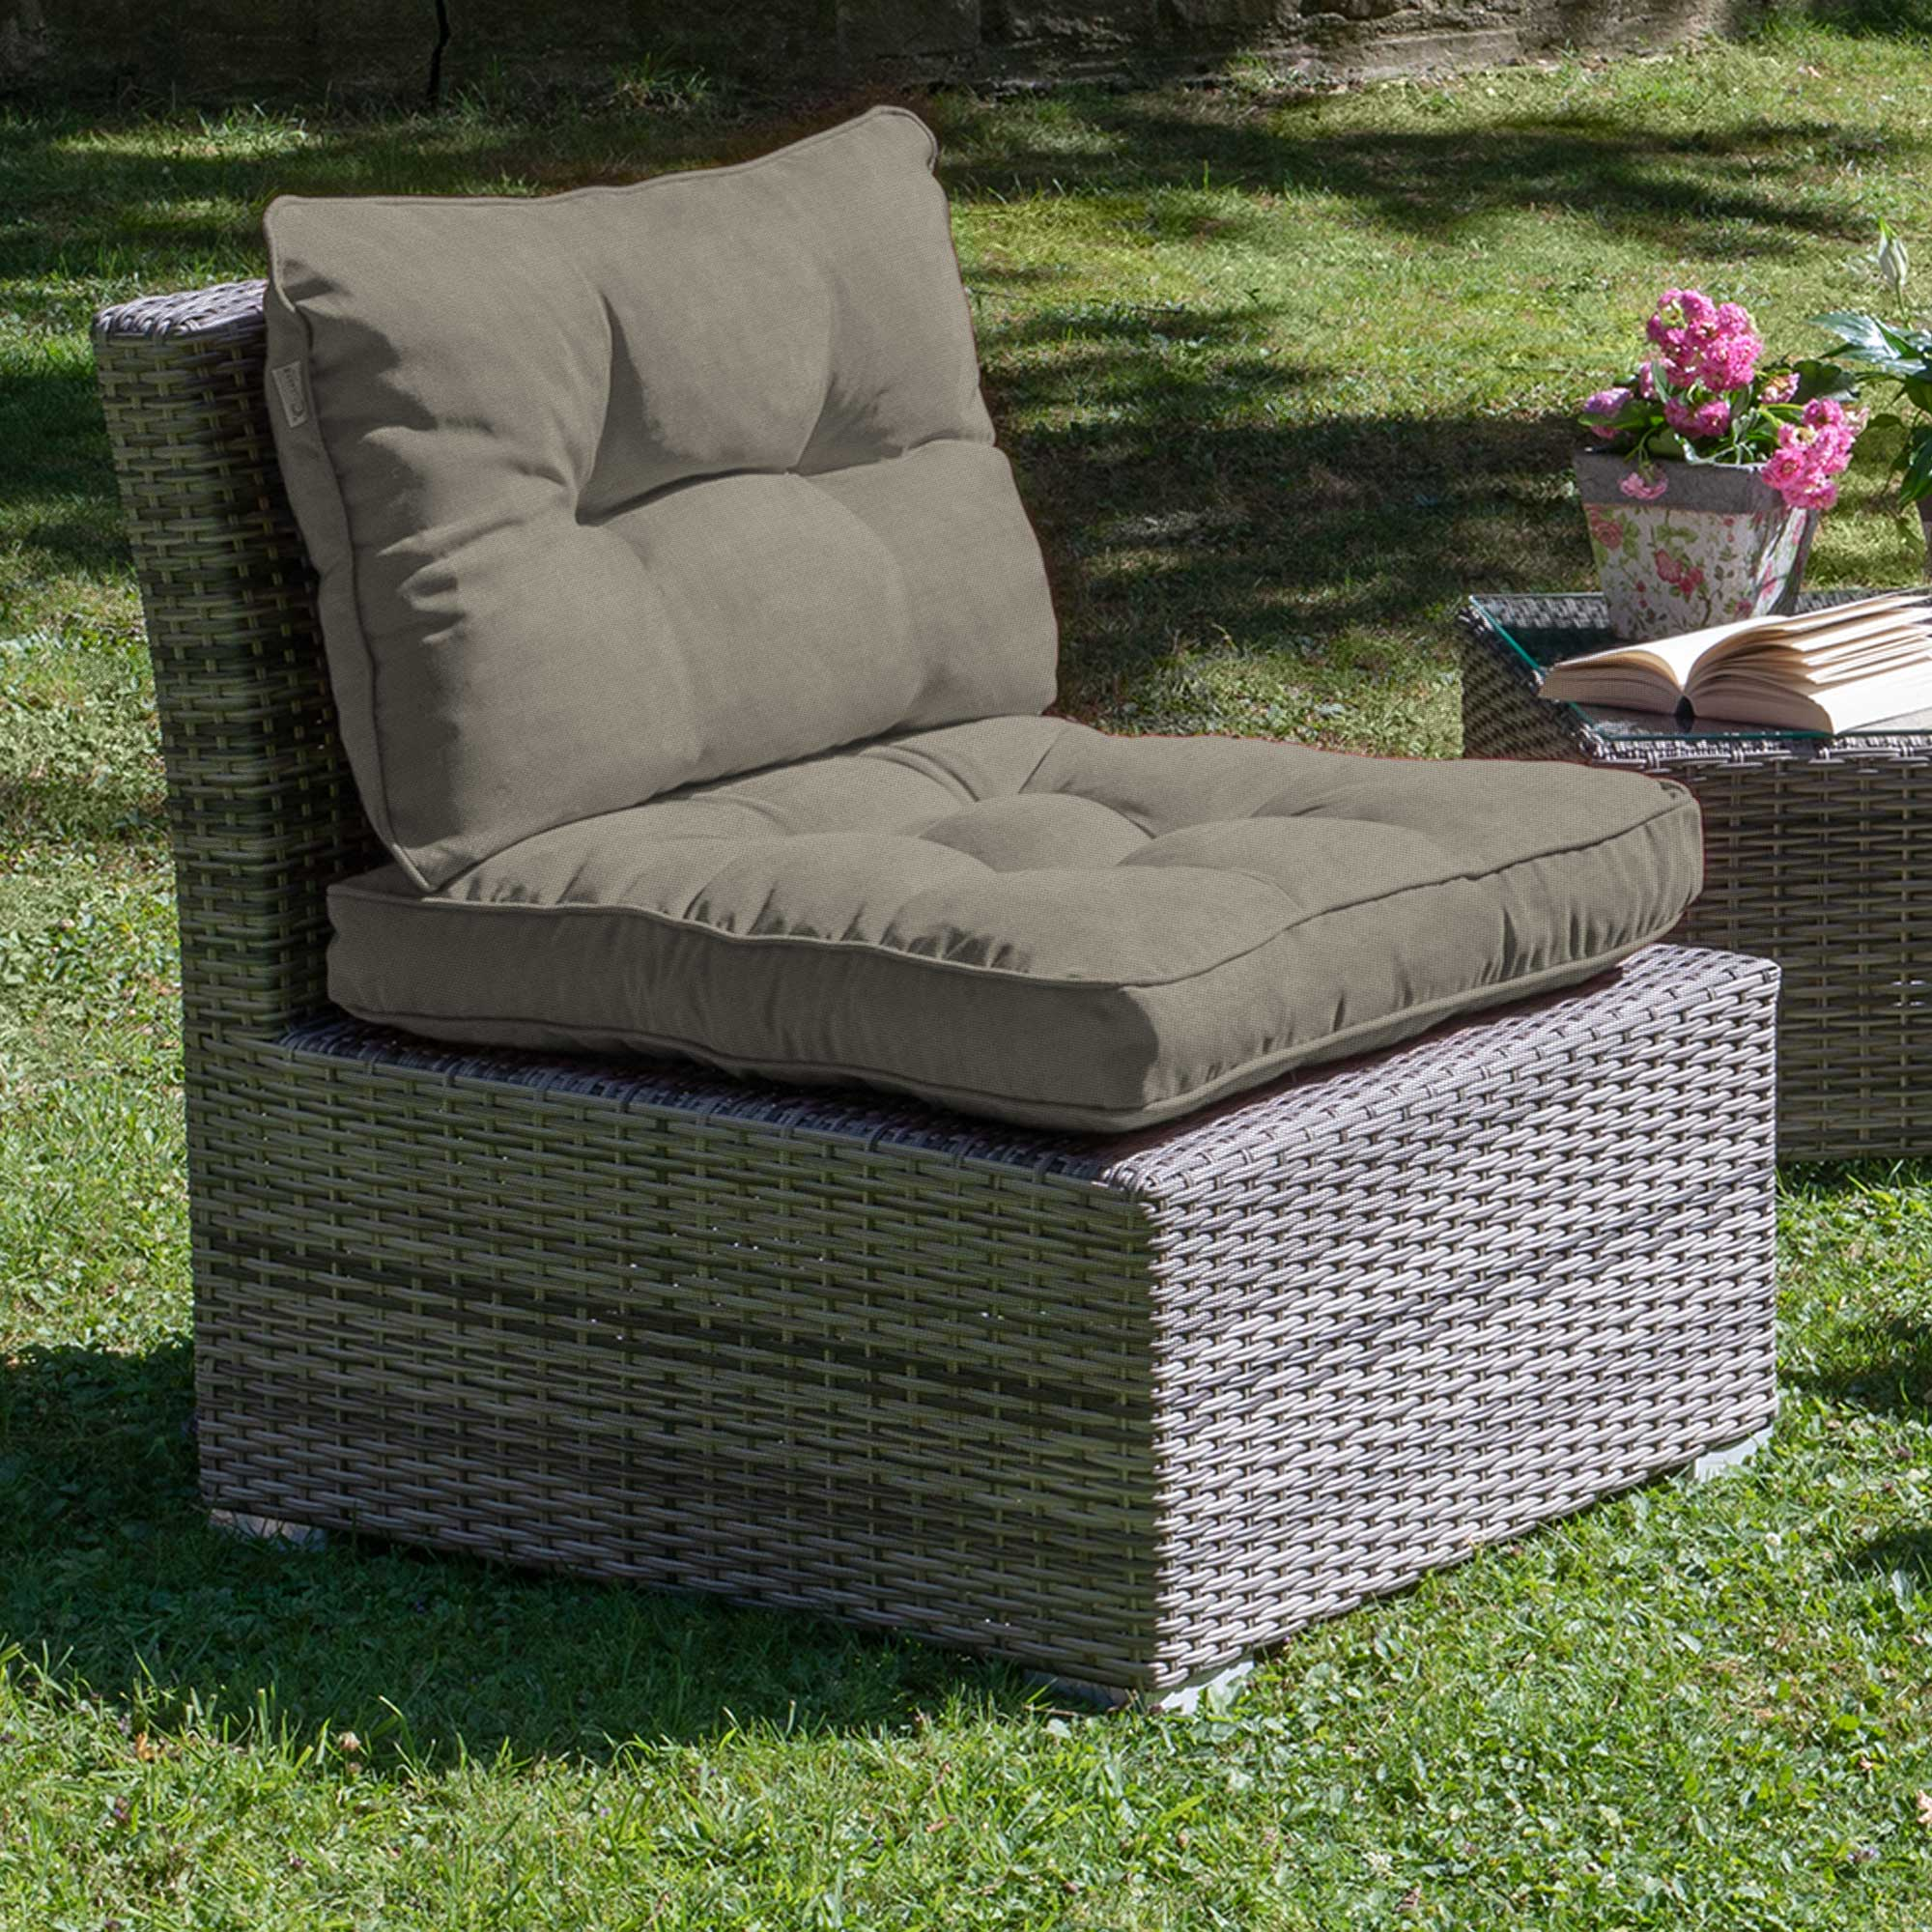 outdoor loungekissen polster auflage r ckenkissen sitzkissen lounge kissen ebay. Black Bedroom Furniture Sets. Home Design Ideas